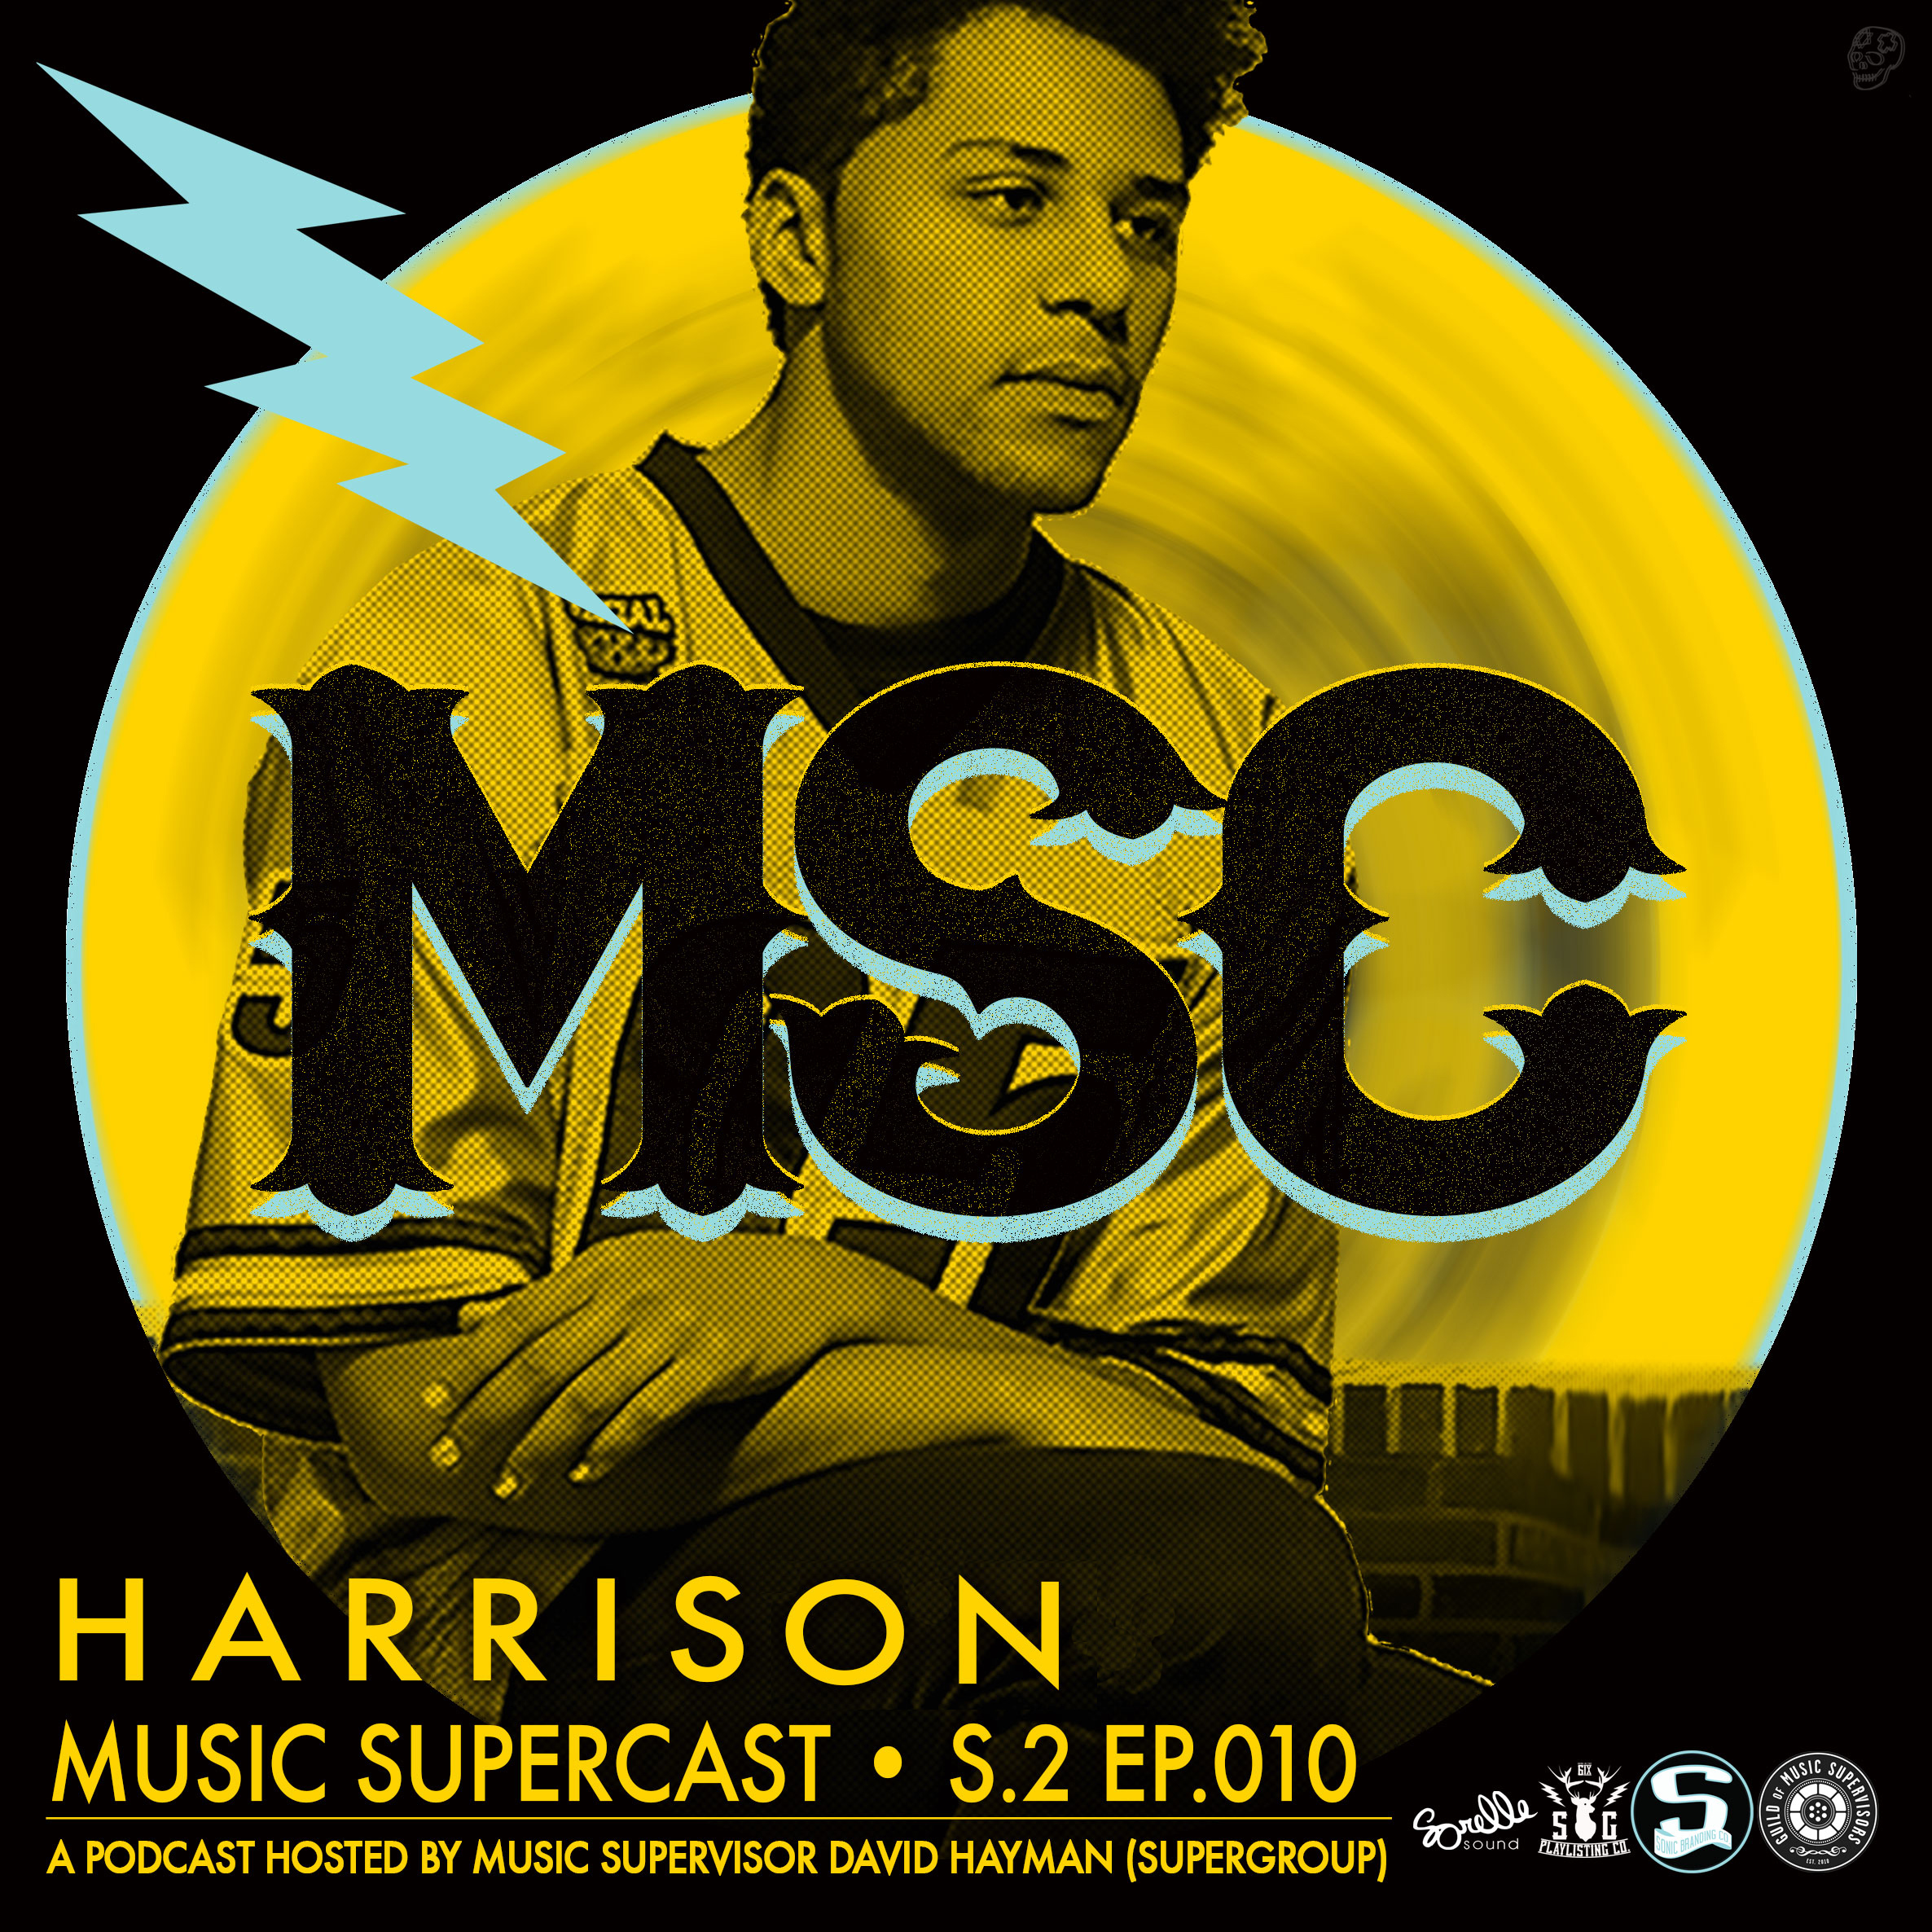 SUPERCAST-S2-COVER-Harrision.jpg